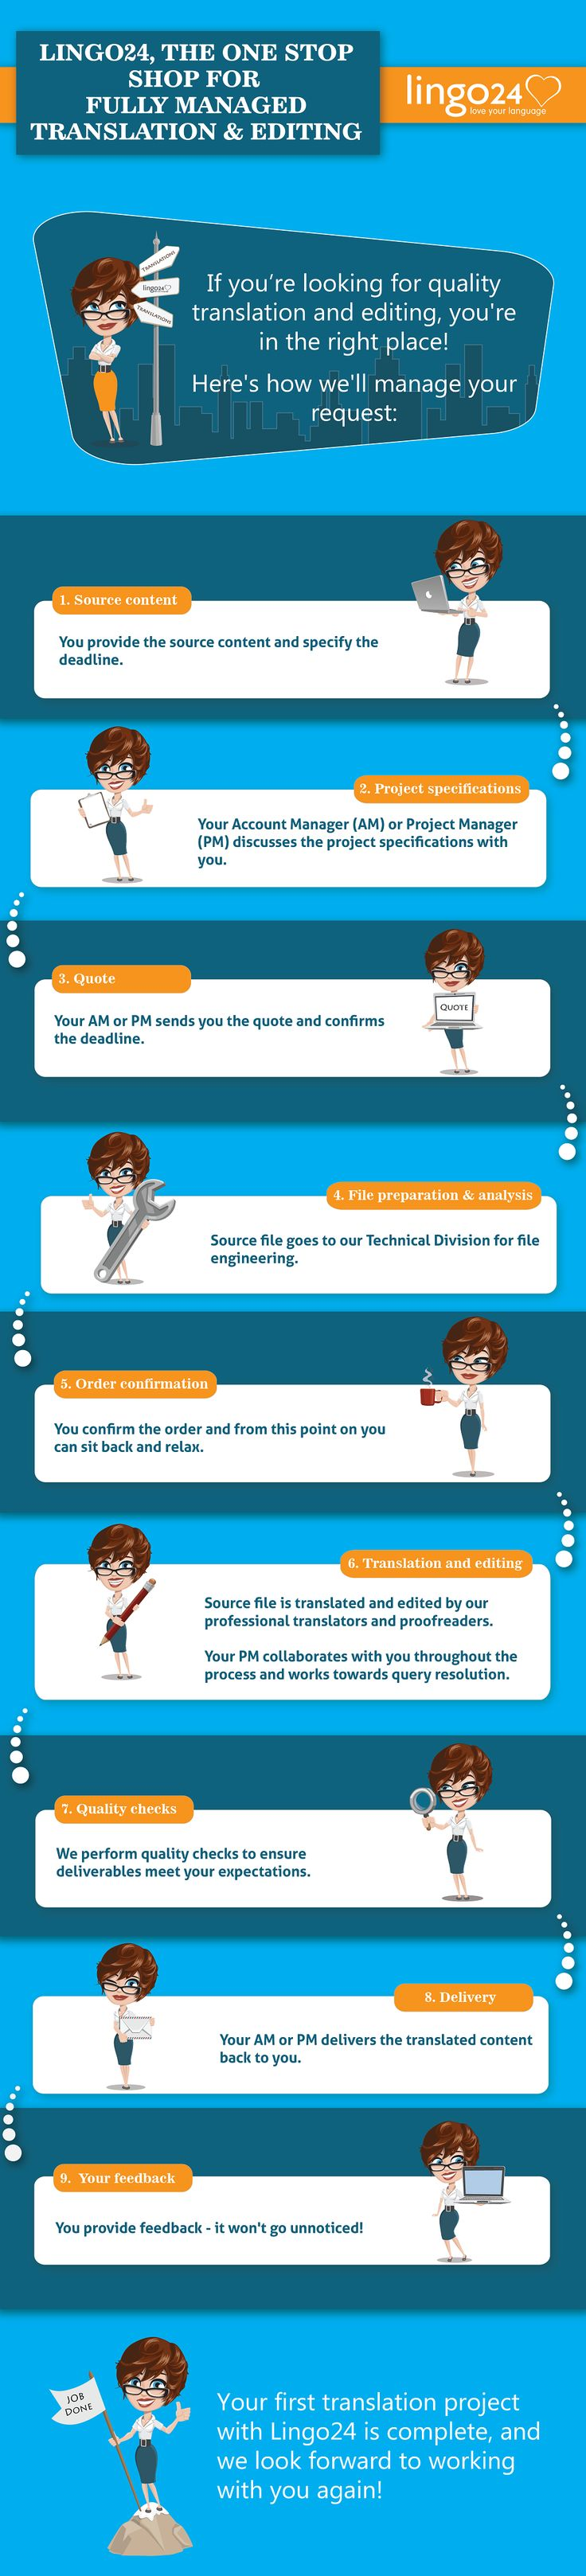 If you're looking for quality translation and editing, you're in the right place! Sneak a peek at the process behind our most popular translation service. #infographic